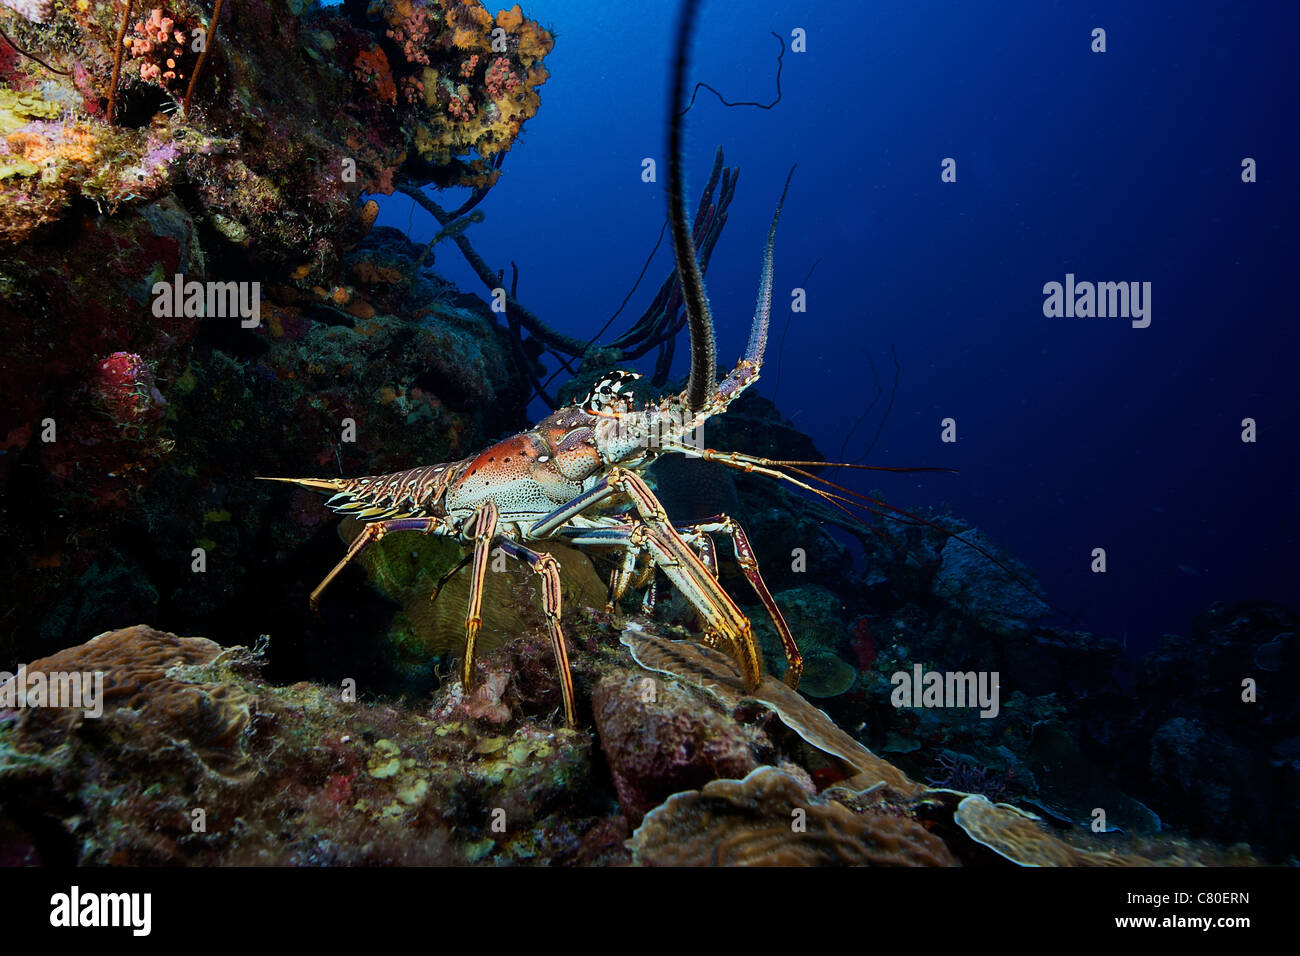 A common spiny lobster backs his way into the protection of the reef, Bonaire, Caribbean Netherlands. Stock Photo